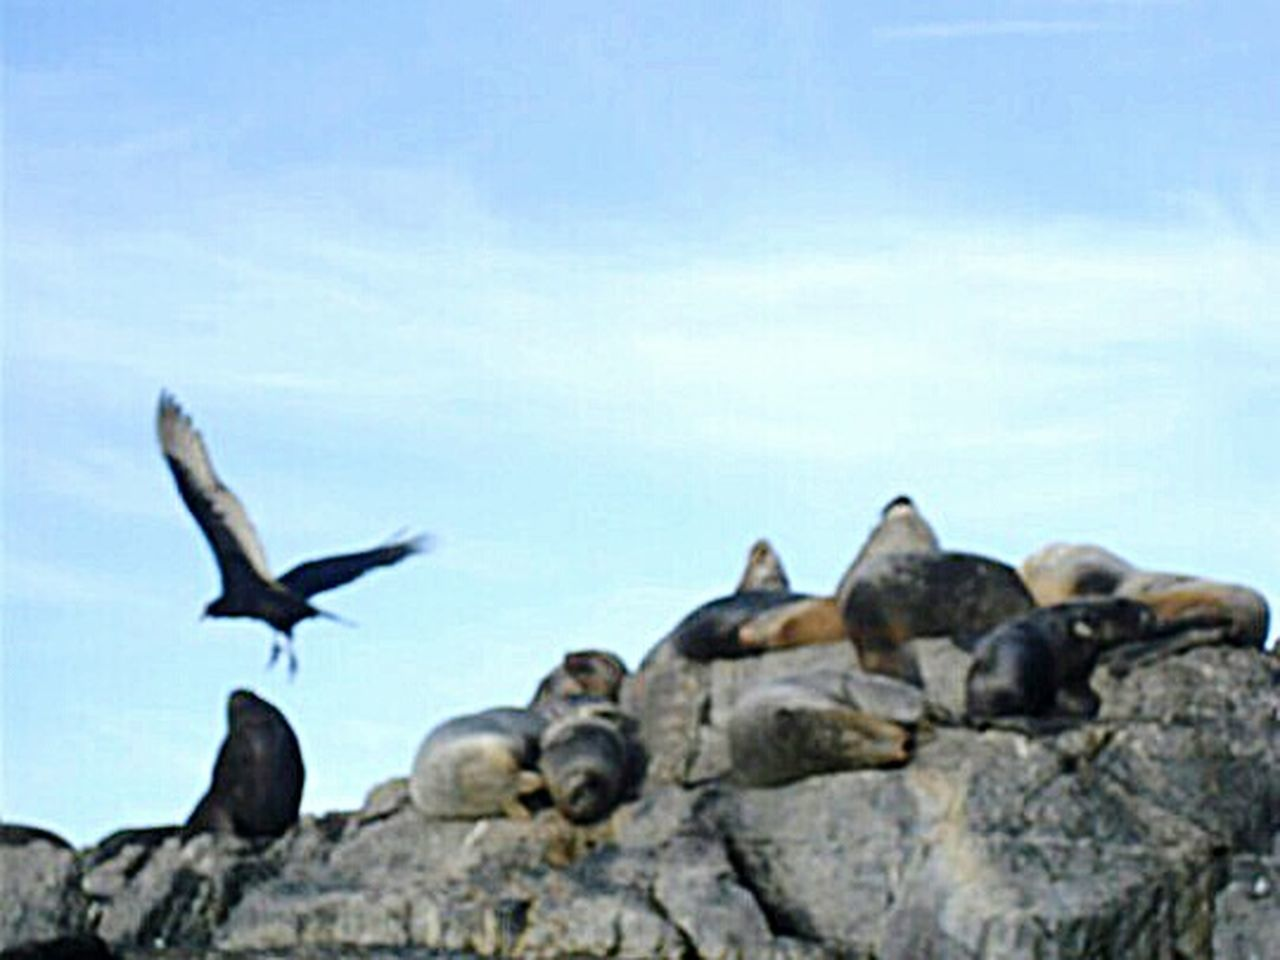 No People Bird Animal Nature Outdoors Animal Themes The Natural World Tranquil Scene Tranquility Canal Beagle Seal Travel Argentina Fin Del Mundo Sea Sea Life Ushuaïa Seal - Animal Sea Lion Sleeping Nature Animal Wildlife Relaxation Animals In The Wild Birds Large Group Of Animals